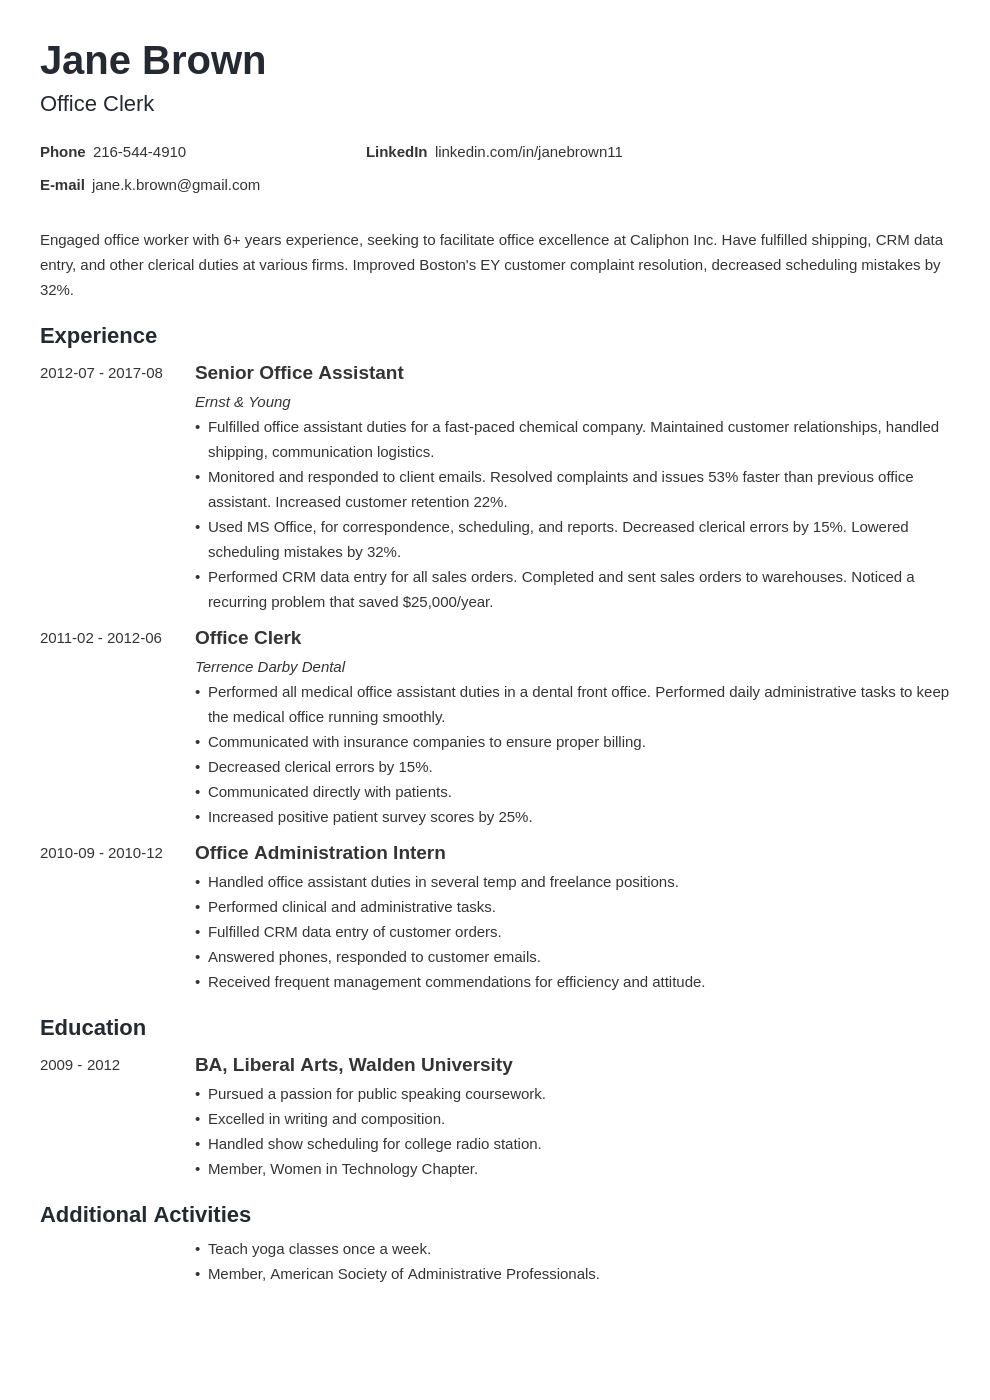 office clerk resume example template minimo